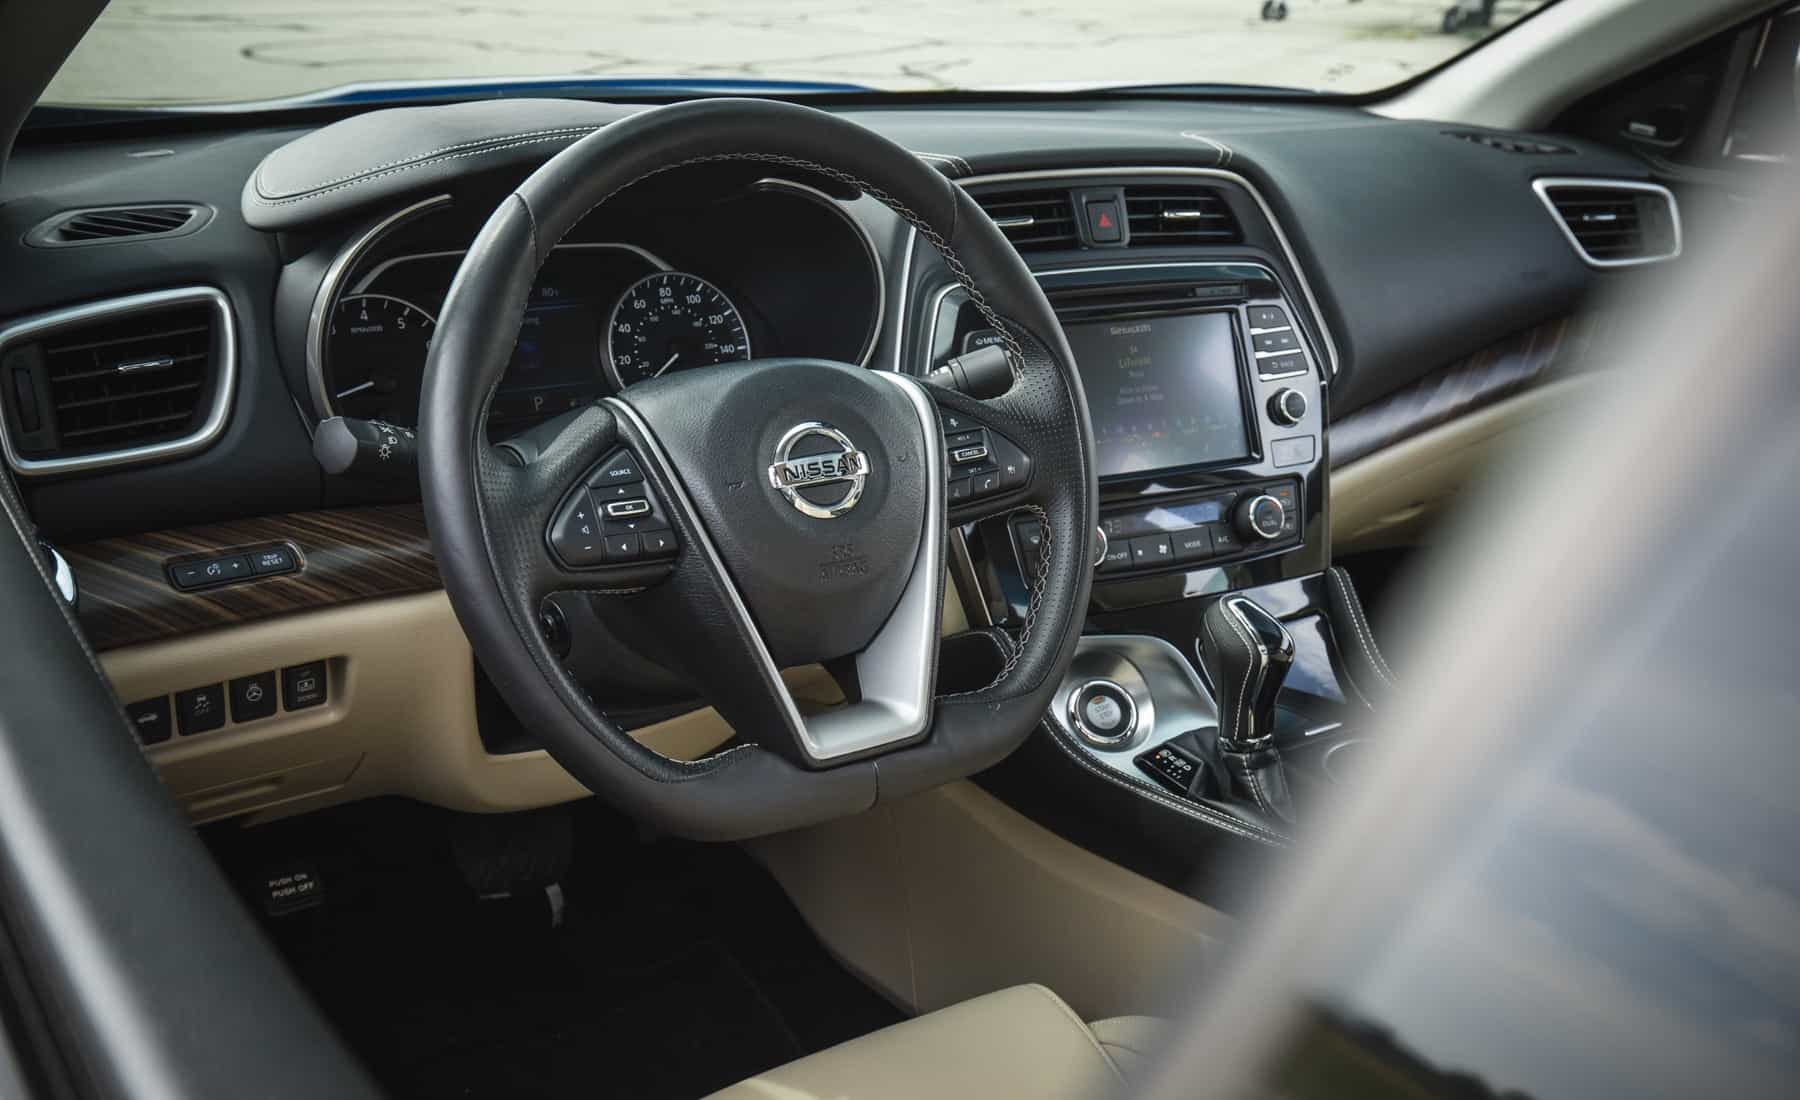 2017 Nissan Maxima Interior View Steering Details (Photo 31 of 40)